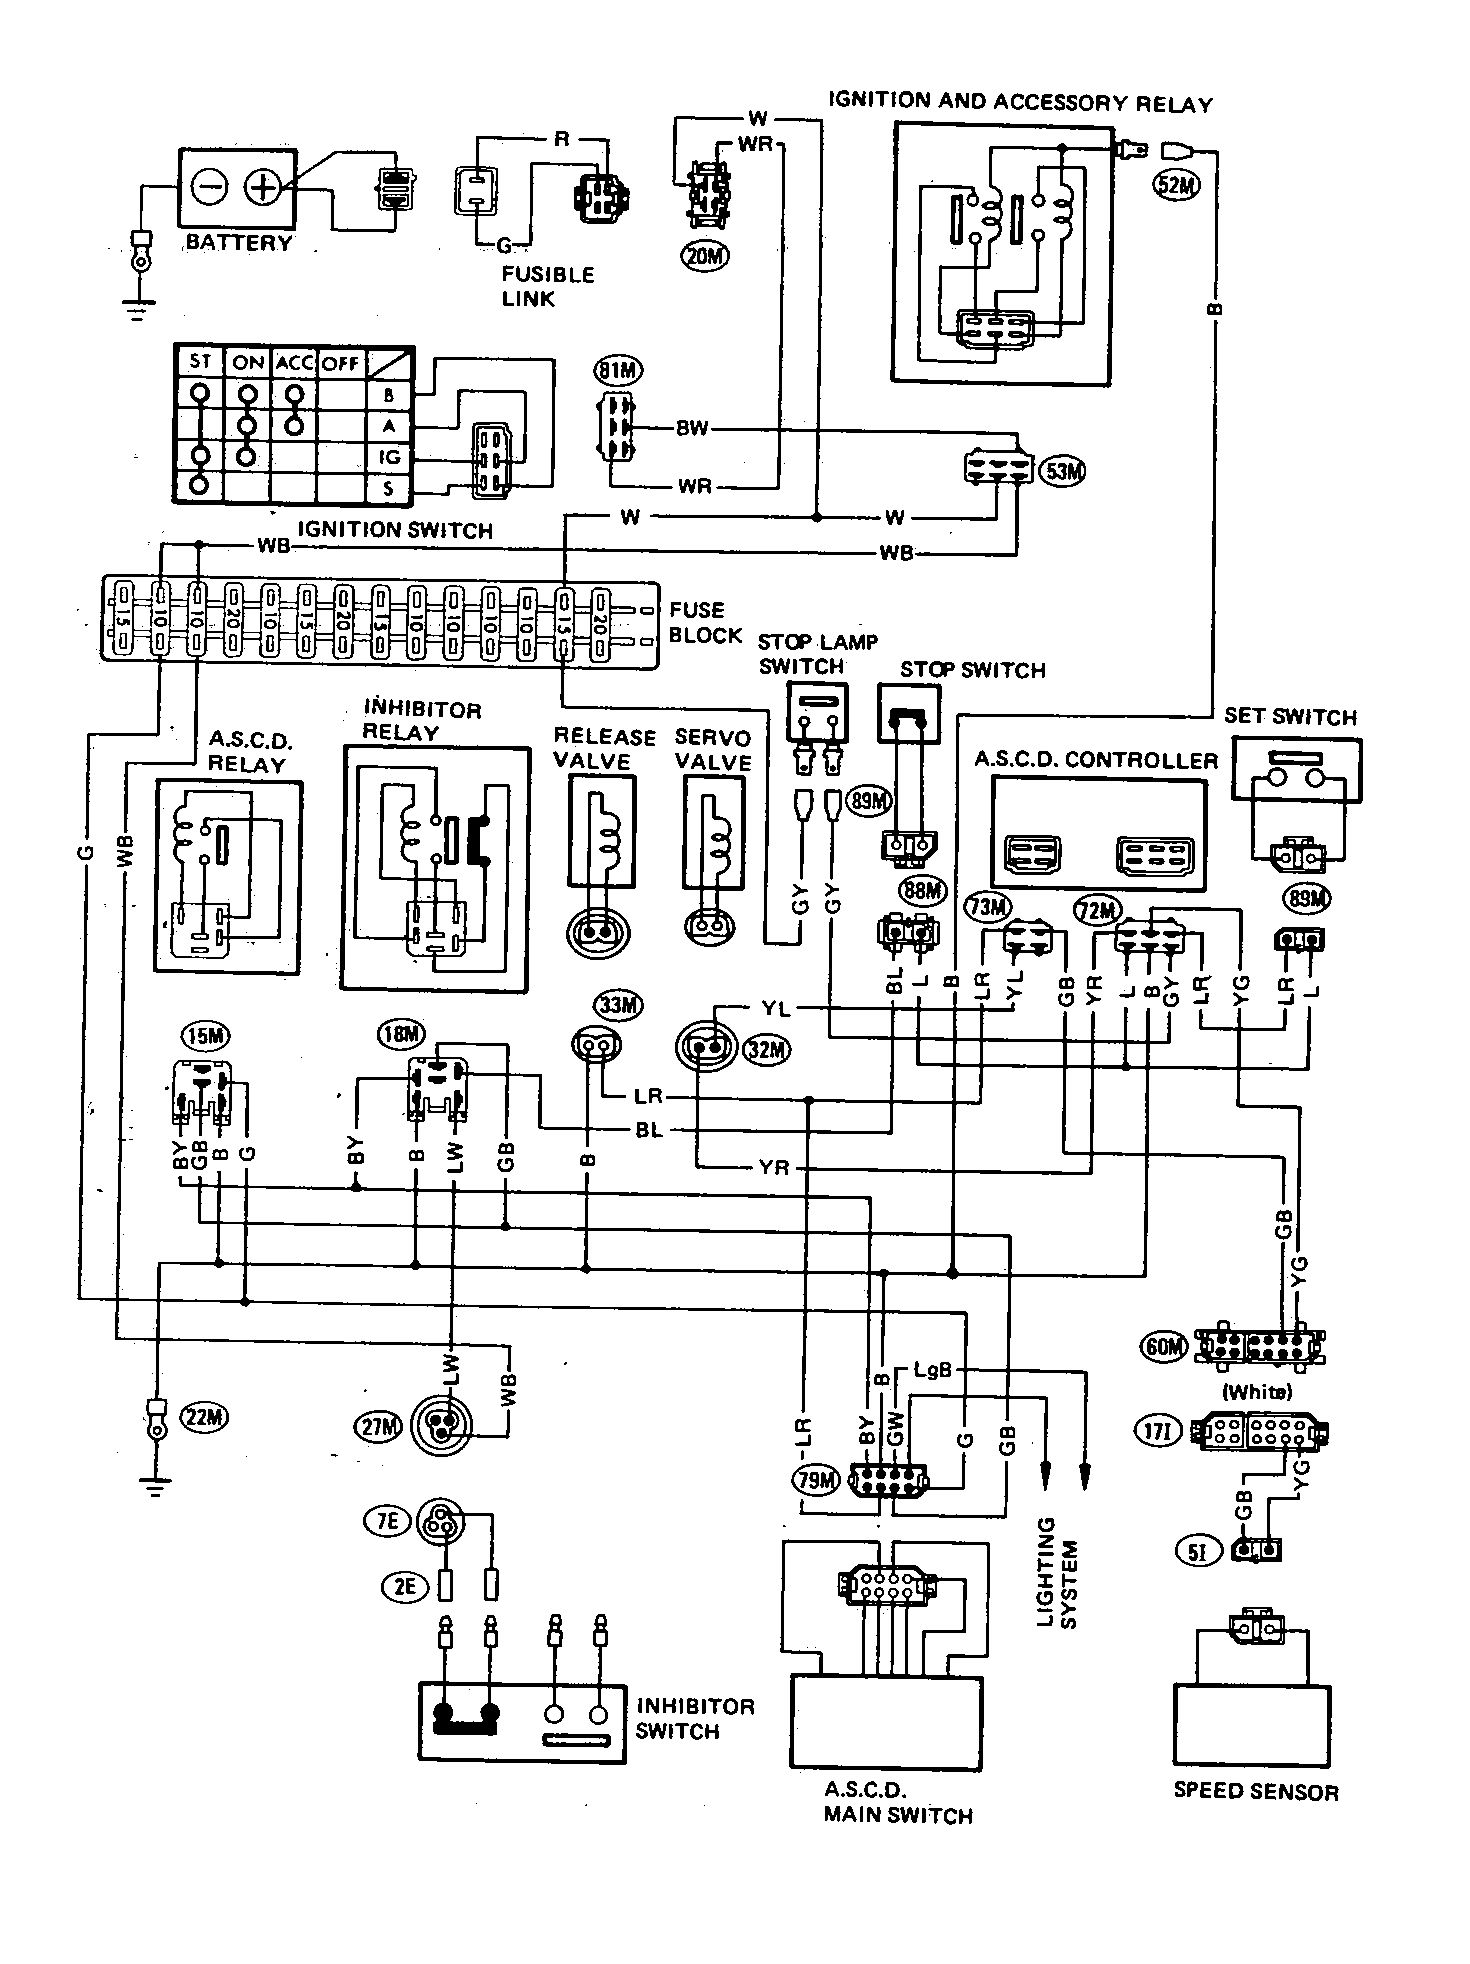 hight resolution of  datsun 200sx 1980 wire diagram automatic speed control devixe lg cassette air conditioner error codes 1470 wiring diagram together with lg mini split